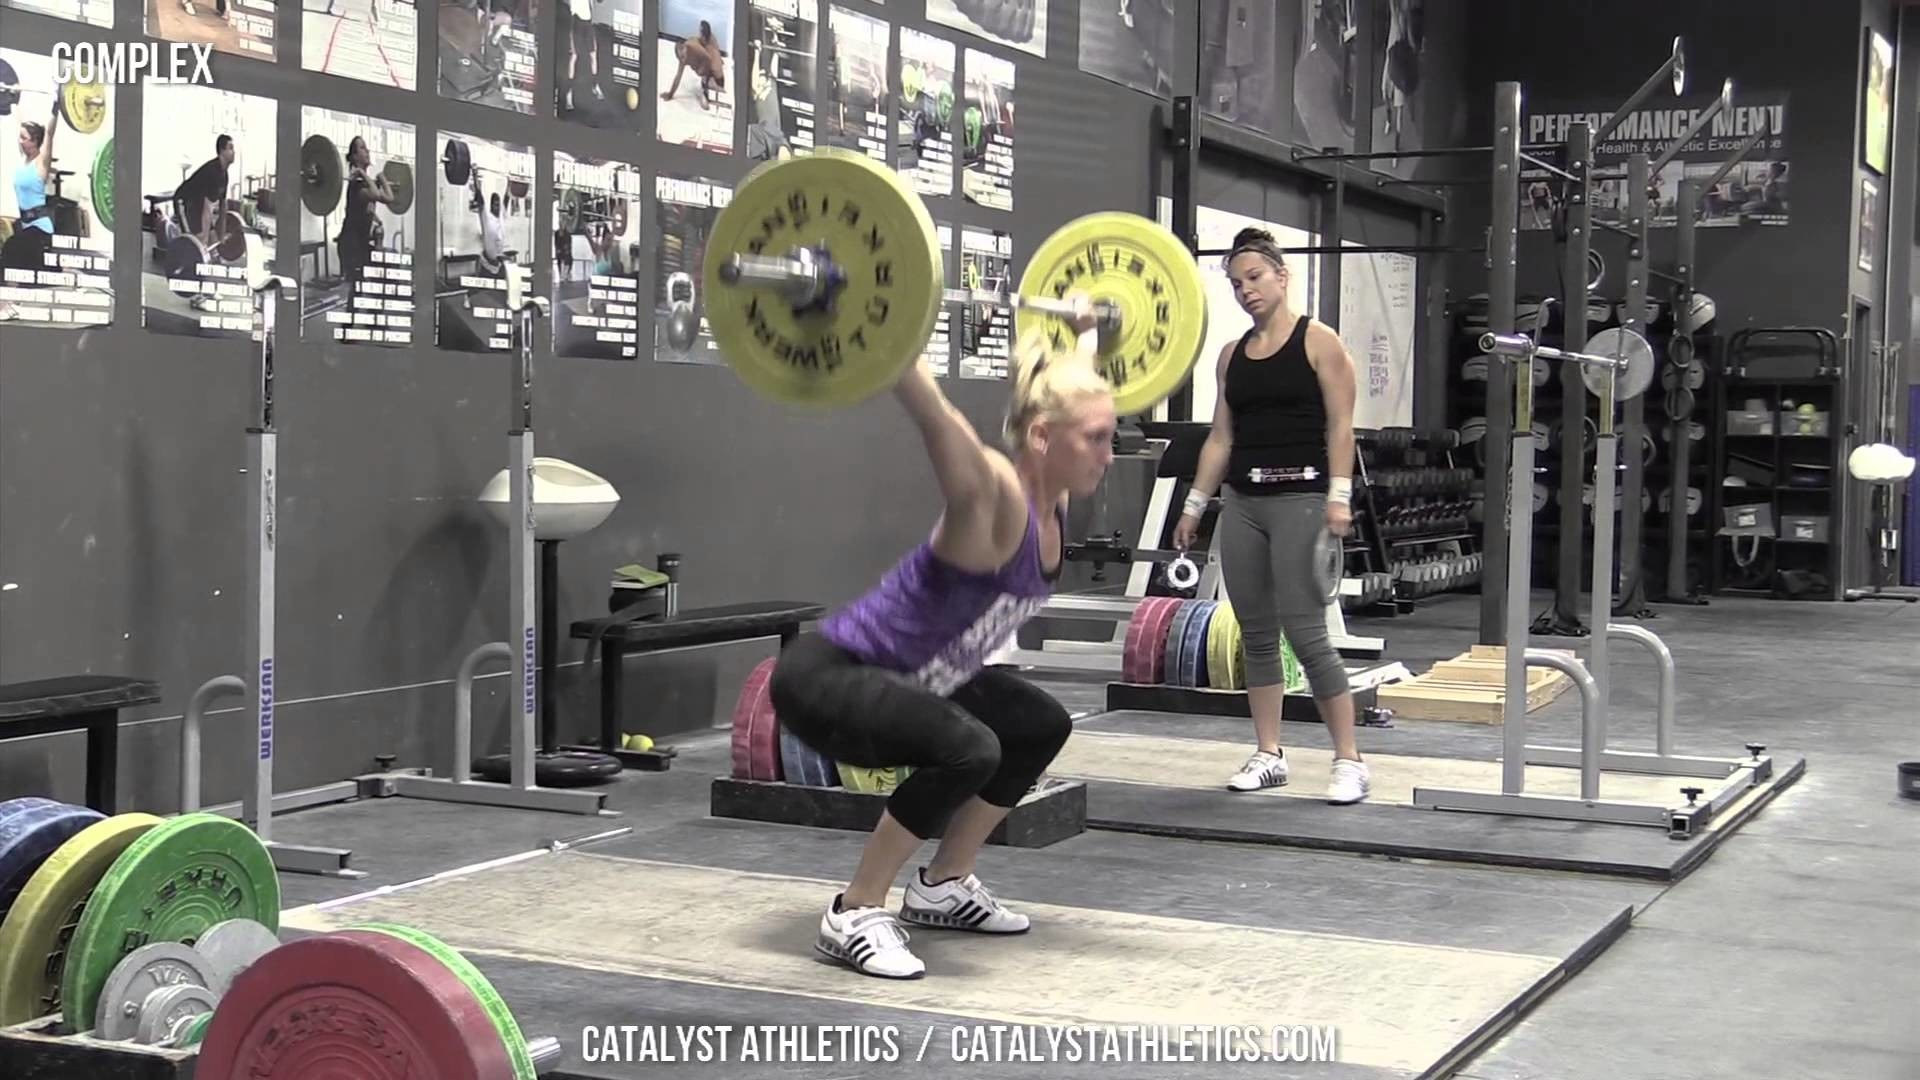 Complex – Olympic Weightlifting – Catalyst Athletics